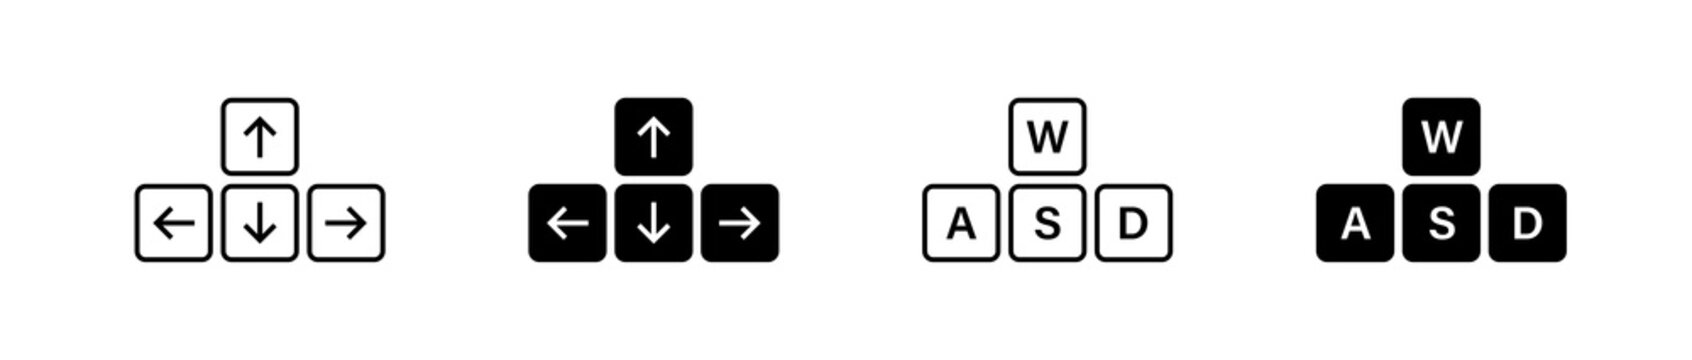 Keyboard button arrow and WASD set icon. Simple minimal flat vector for app and web